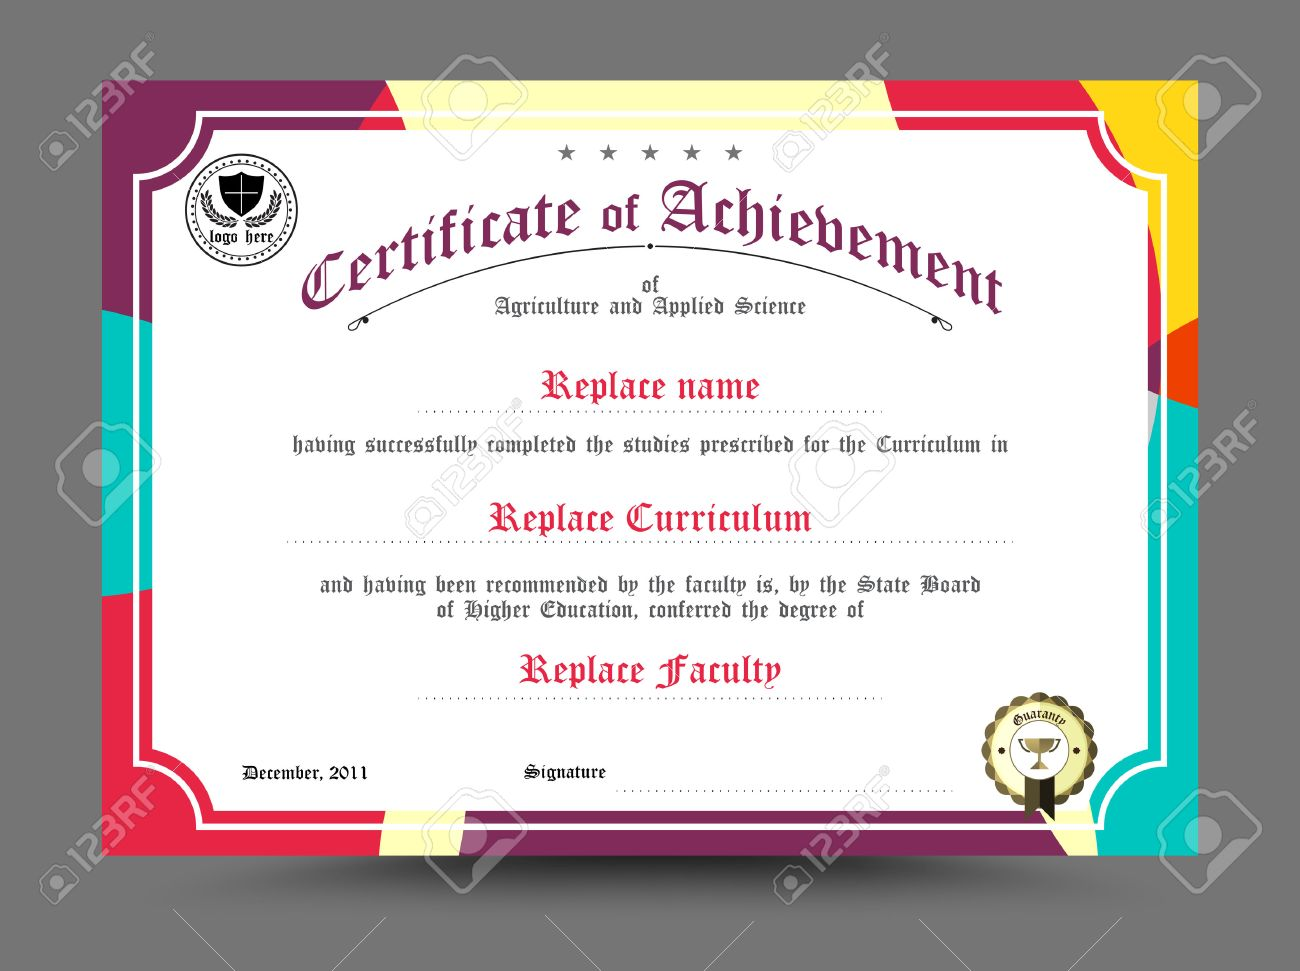 Diploma certificate template design vector illustration royalty diploma certificate template design vector illustration stock vector 43642968 thecheapjerseys Gallery